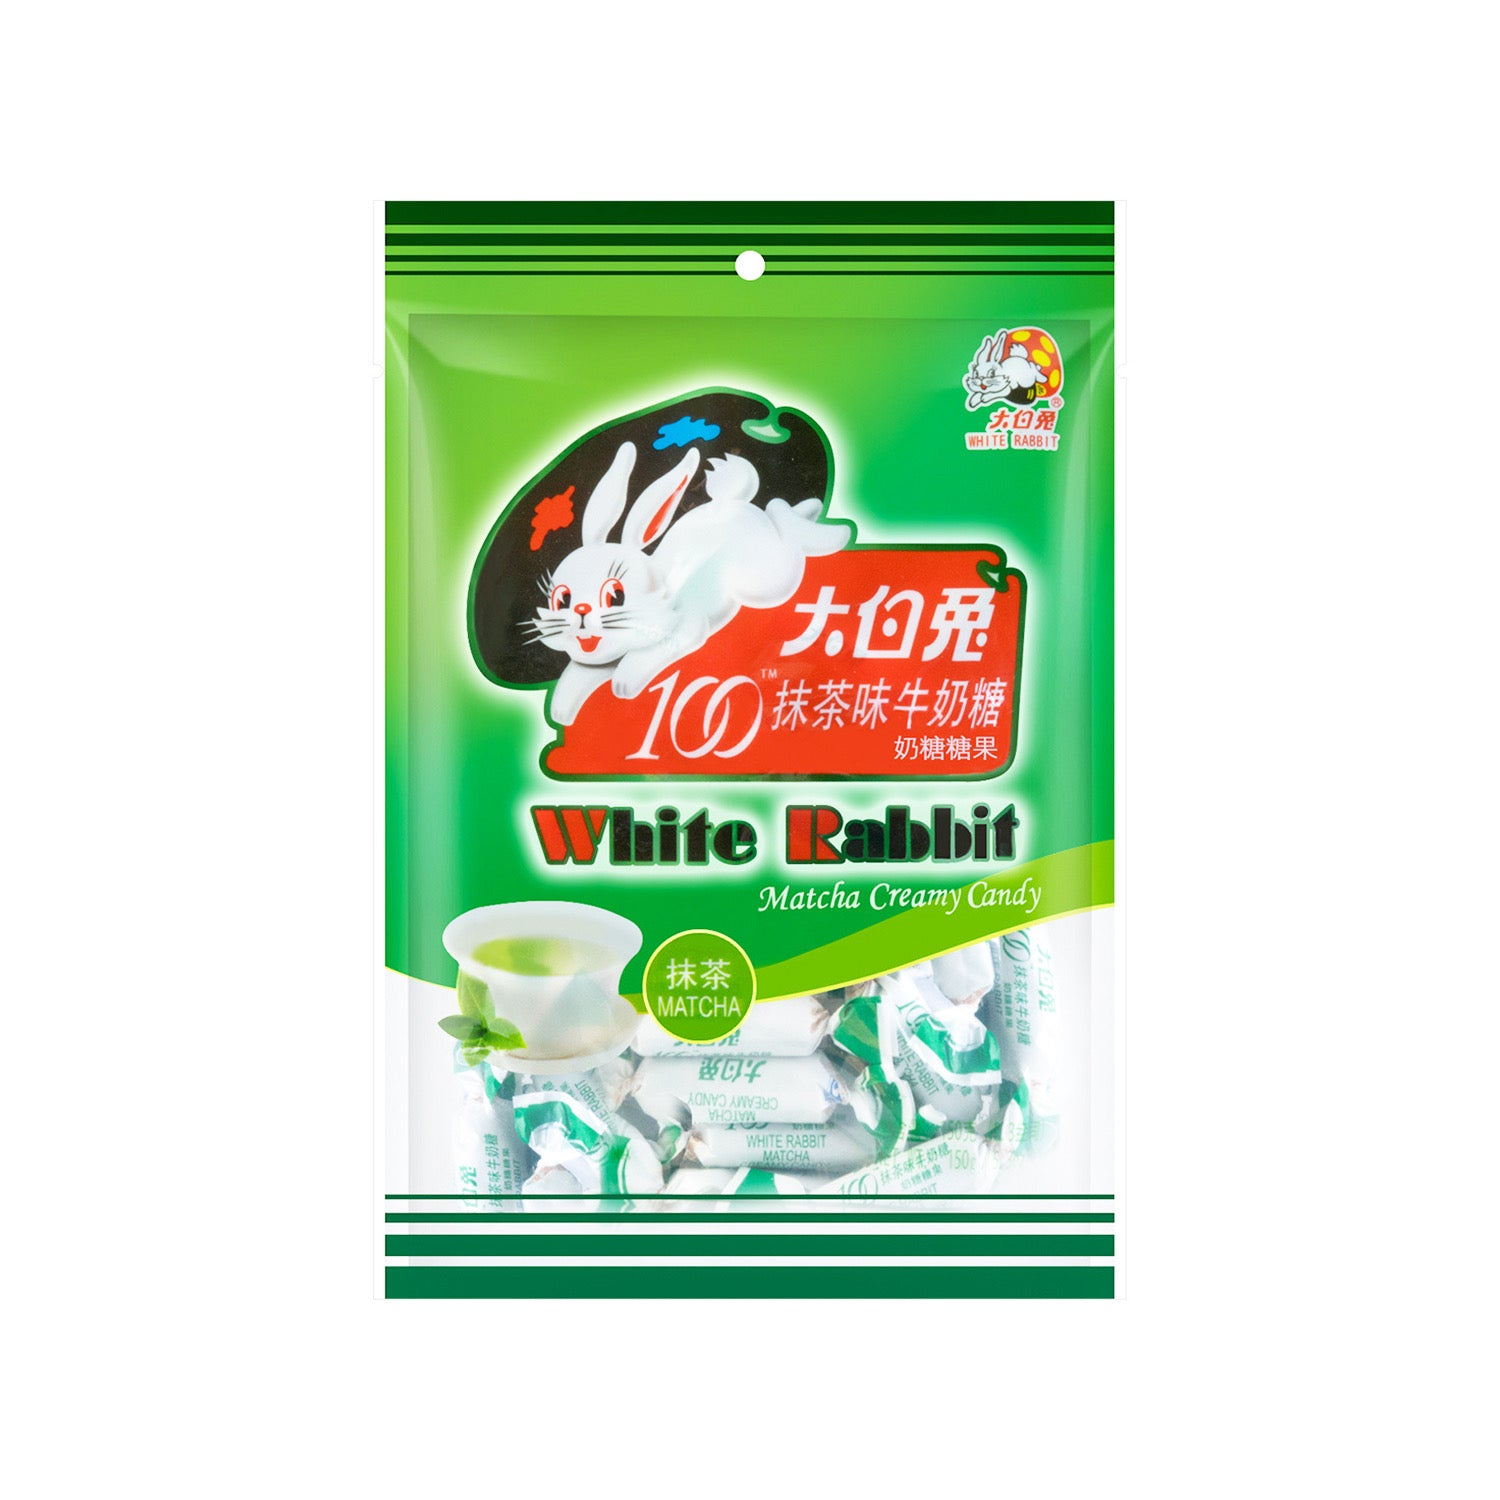 White Rabbit Matcha Creamy Candy 大白兔抹茶奶糖